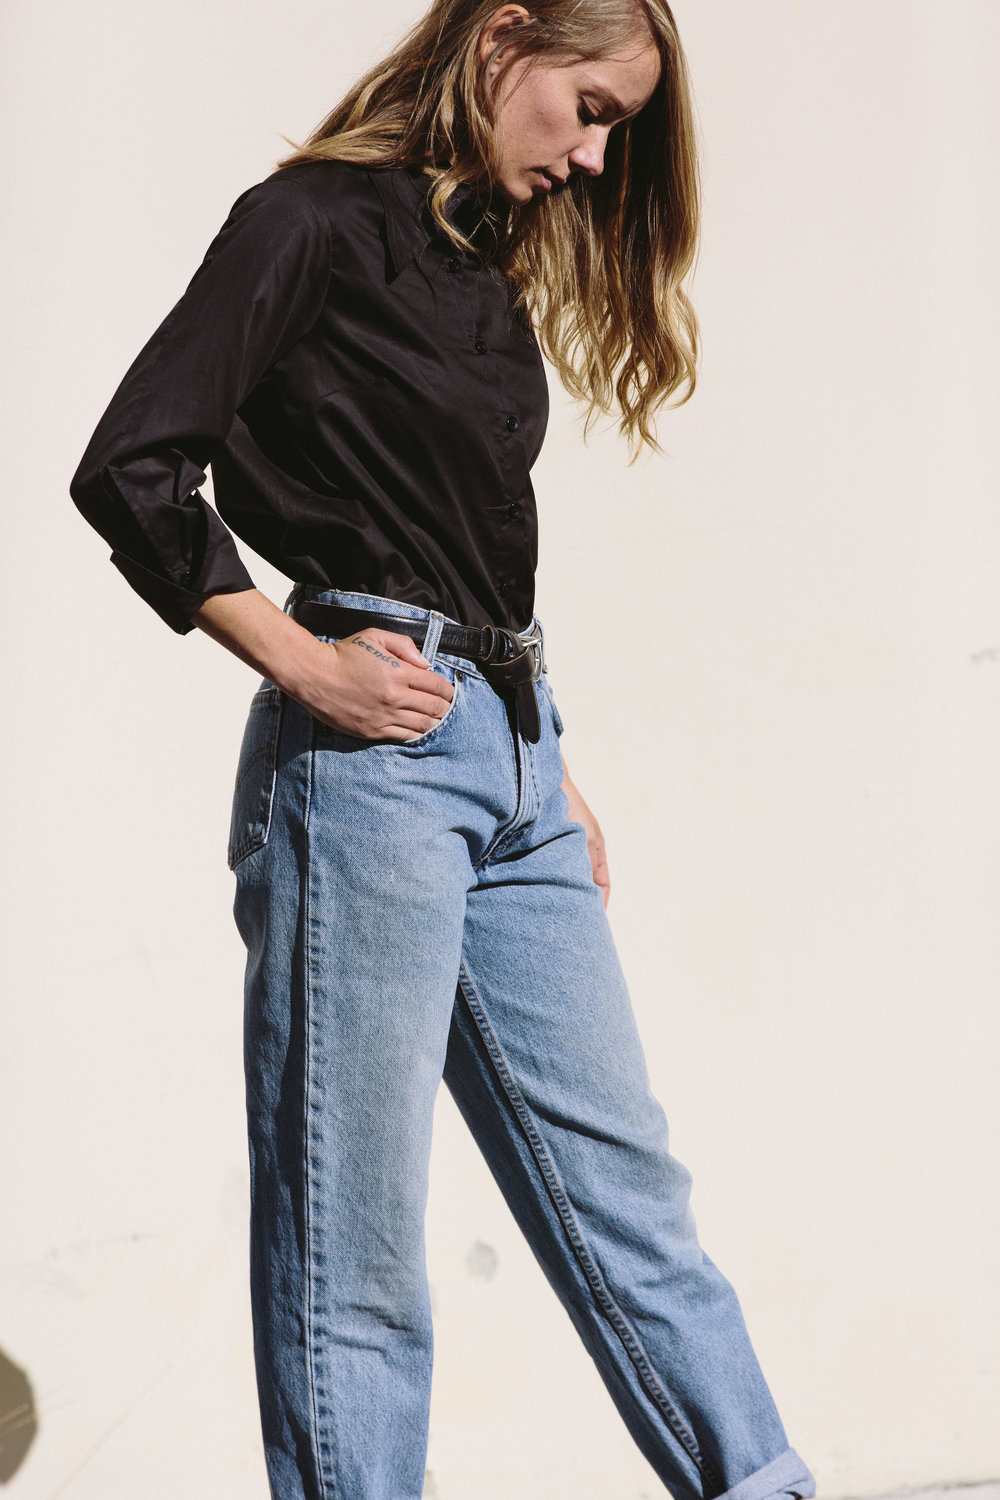 ellice ruiz_sustainable denim